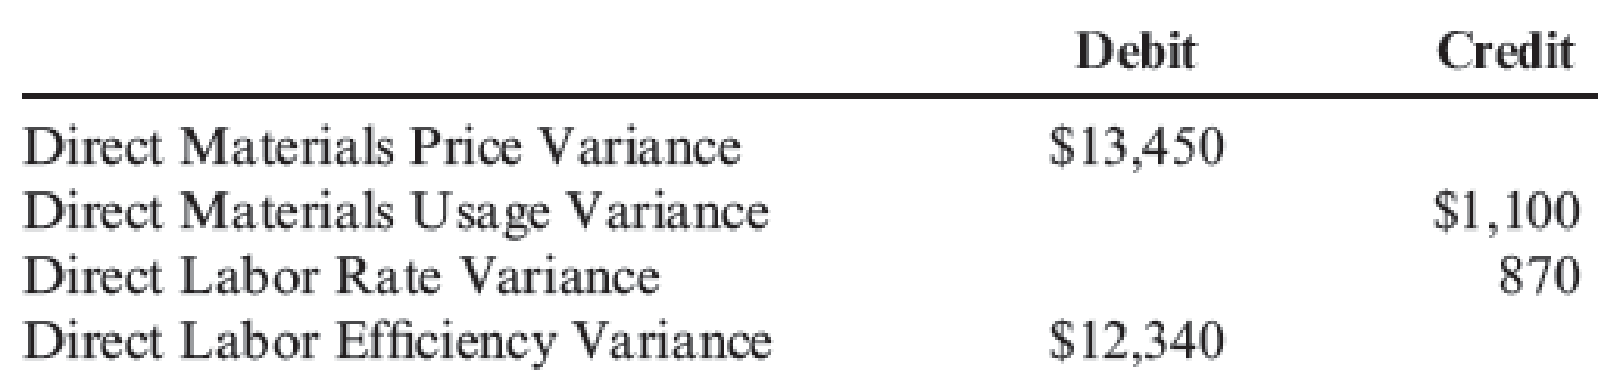 Chapter 9, Problem 5CE, Yohan Company has the following balances in its direct materials and direct labor variance accounts